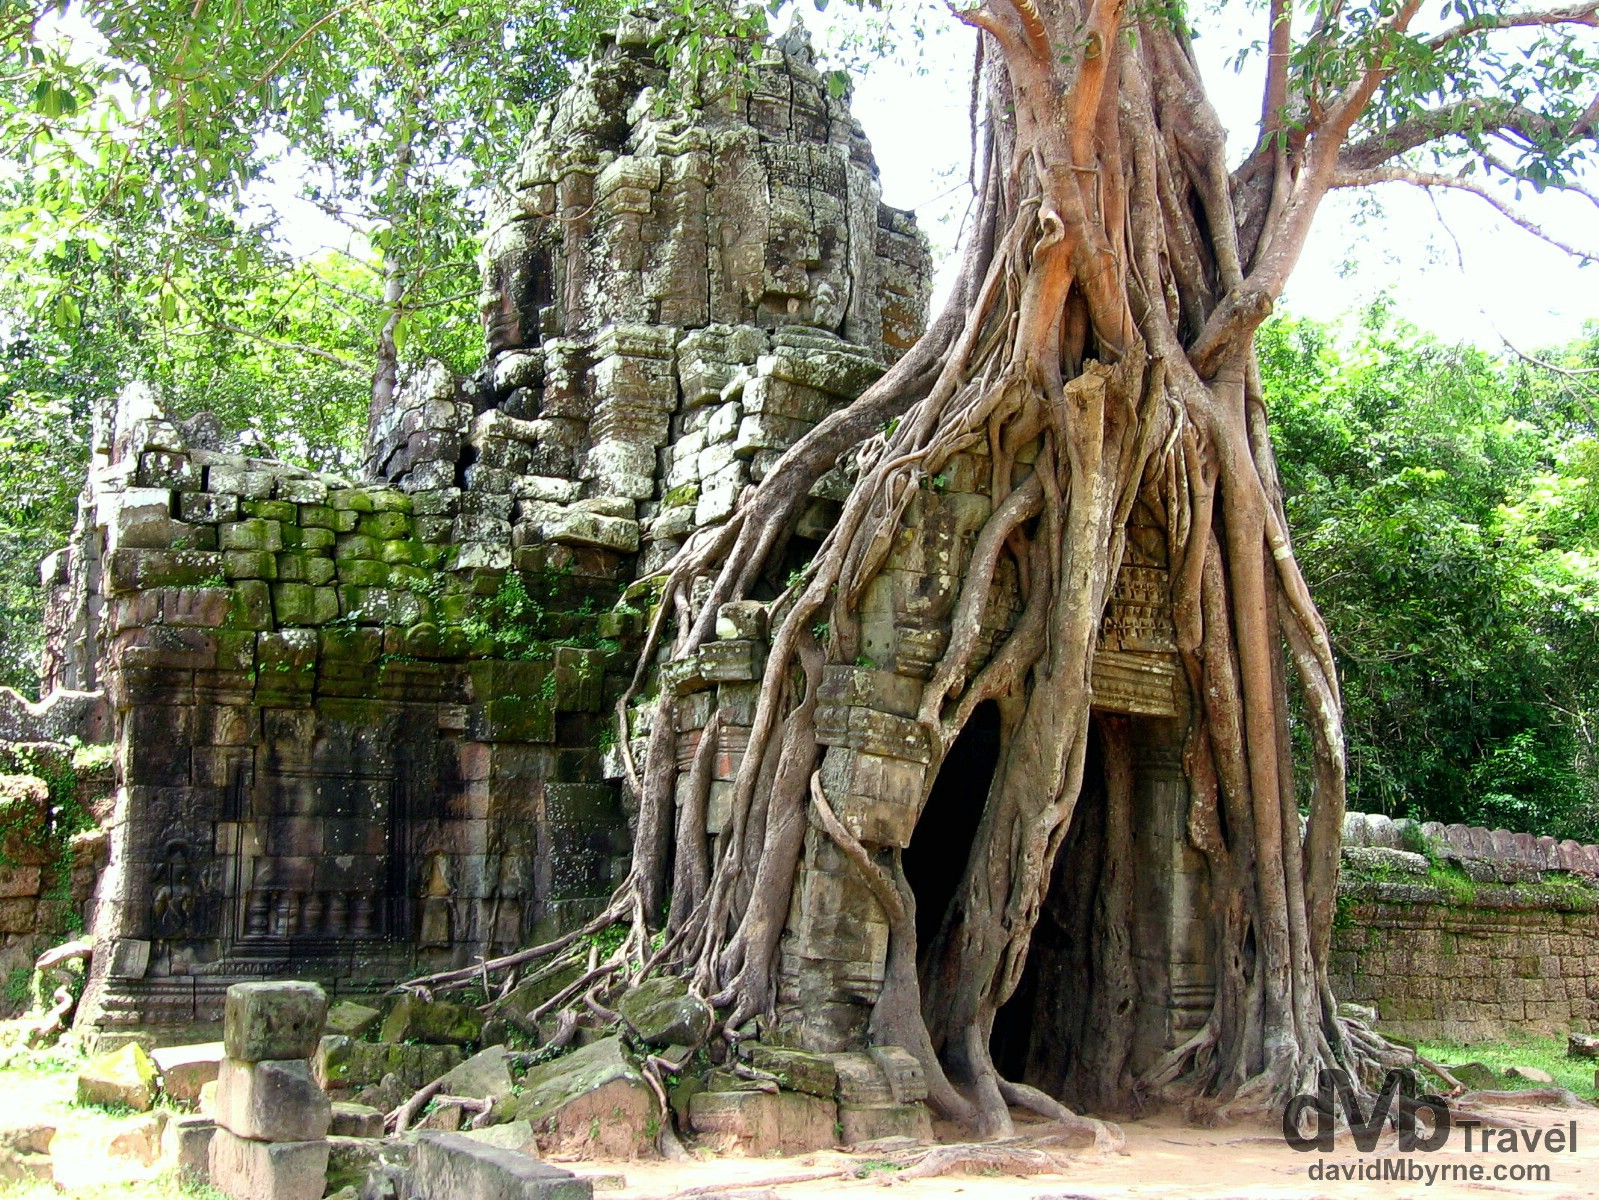 A tree smothers a part of the temple Preah Khan, Angkor, Cambodia. September 20th, 2005.